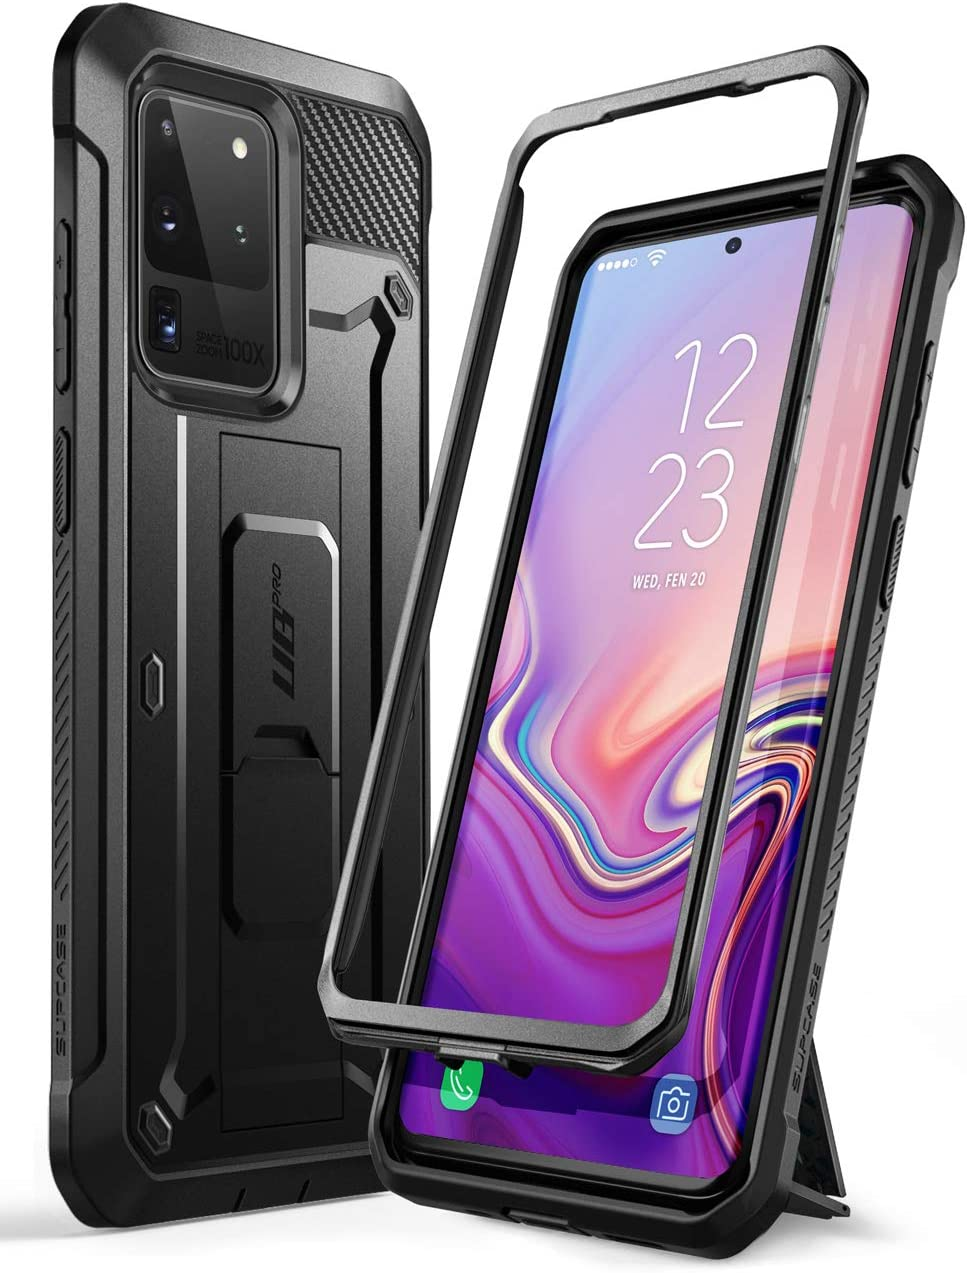 Full-Body Dual Layer Rugged Holster /& Kickstand Case Without Built-in Screen Protector 2020 Release SupCase UB Pro Series Designed for Samsung Galaxy S20 Ultra // S20 Ultra 5G Case Black